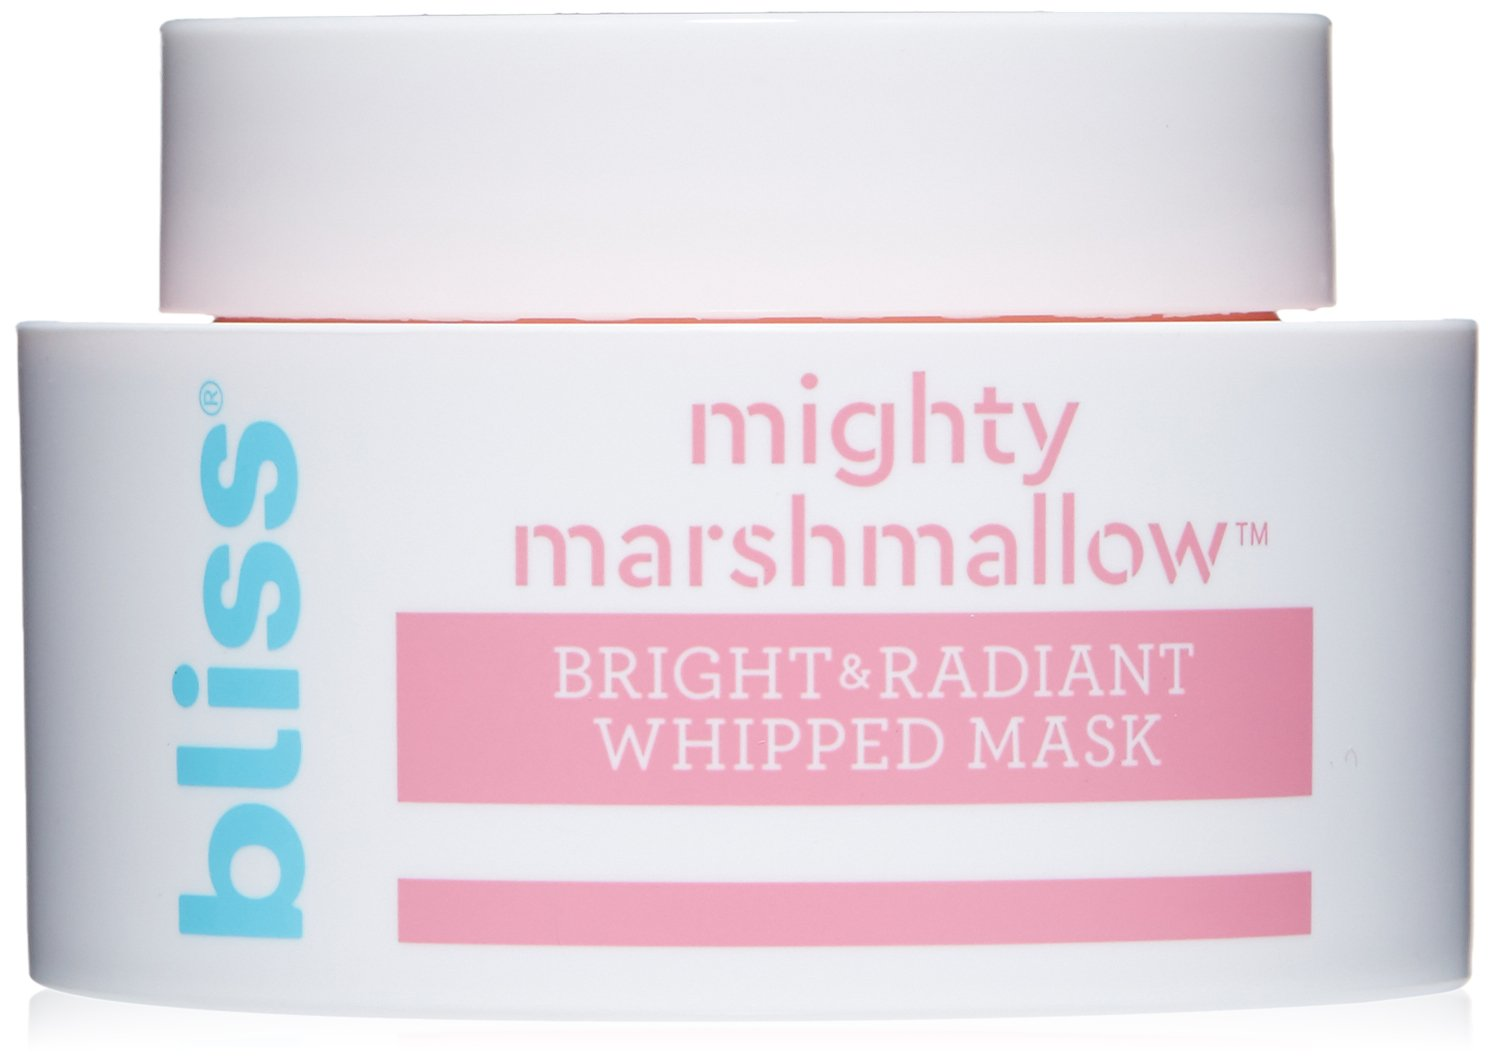 Bliss - Mighty Marshmallow Face Mask | Brightening & Hydrating Face Mask| Vegan | Cruelty Free | Paraben Free | 1.7 fl. oz. by Bliss